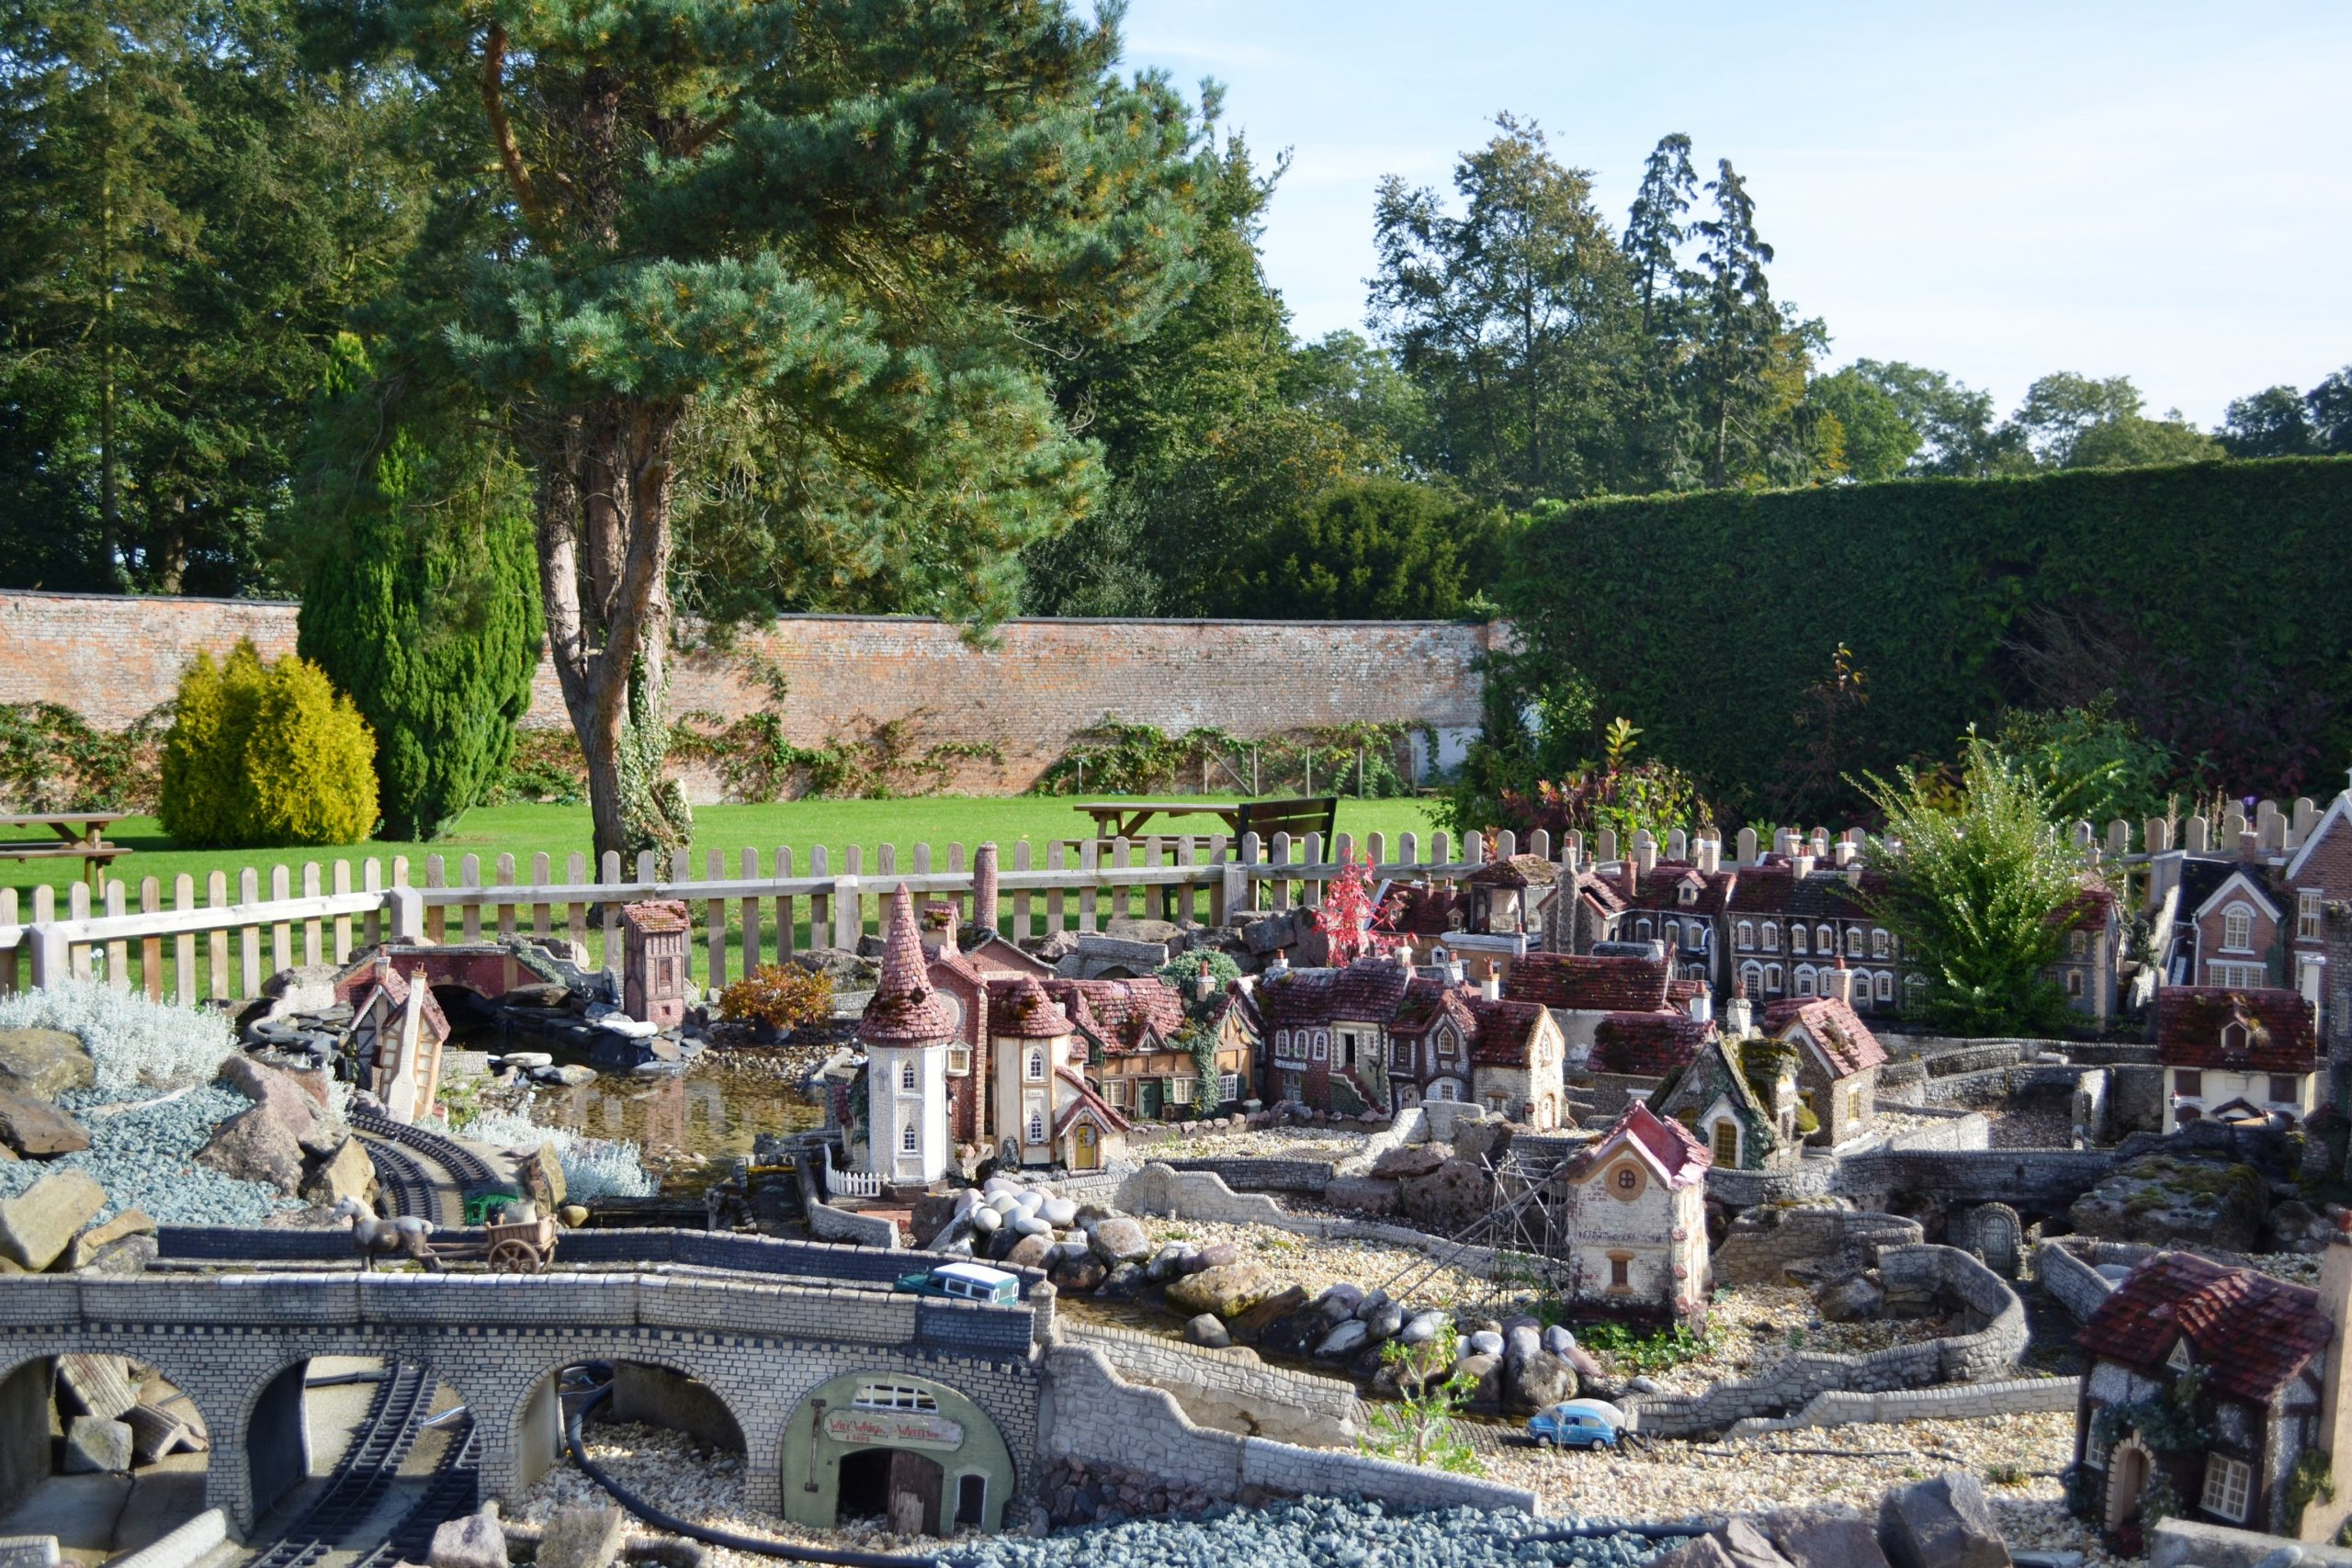 The garden at Wistow Rural Centre with a model village